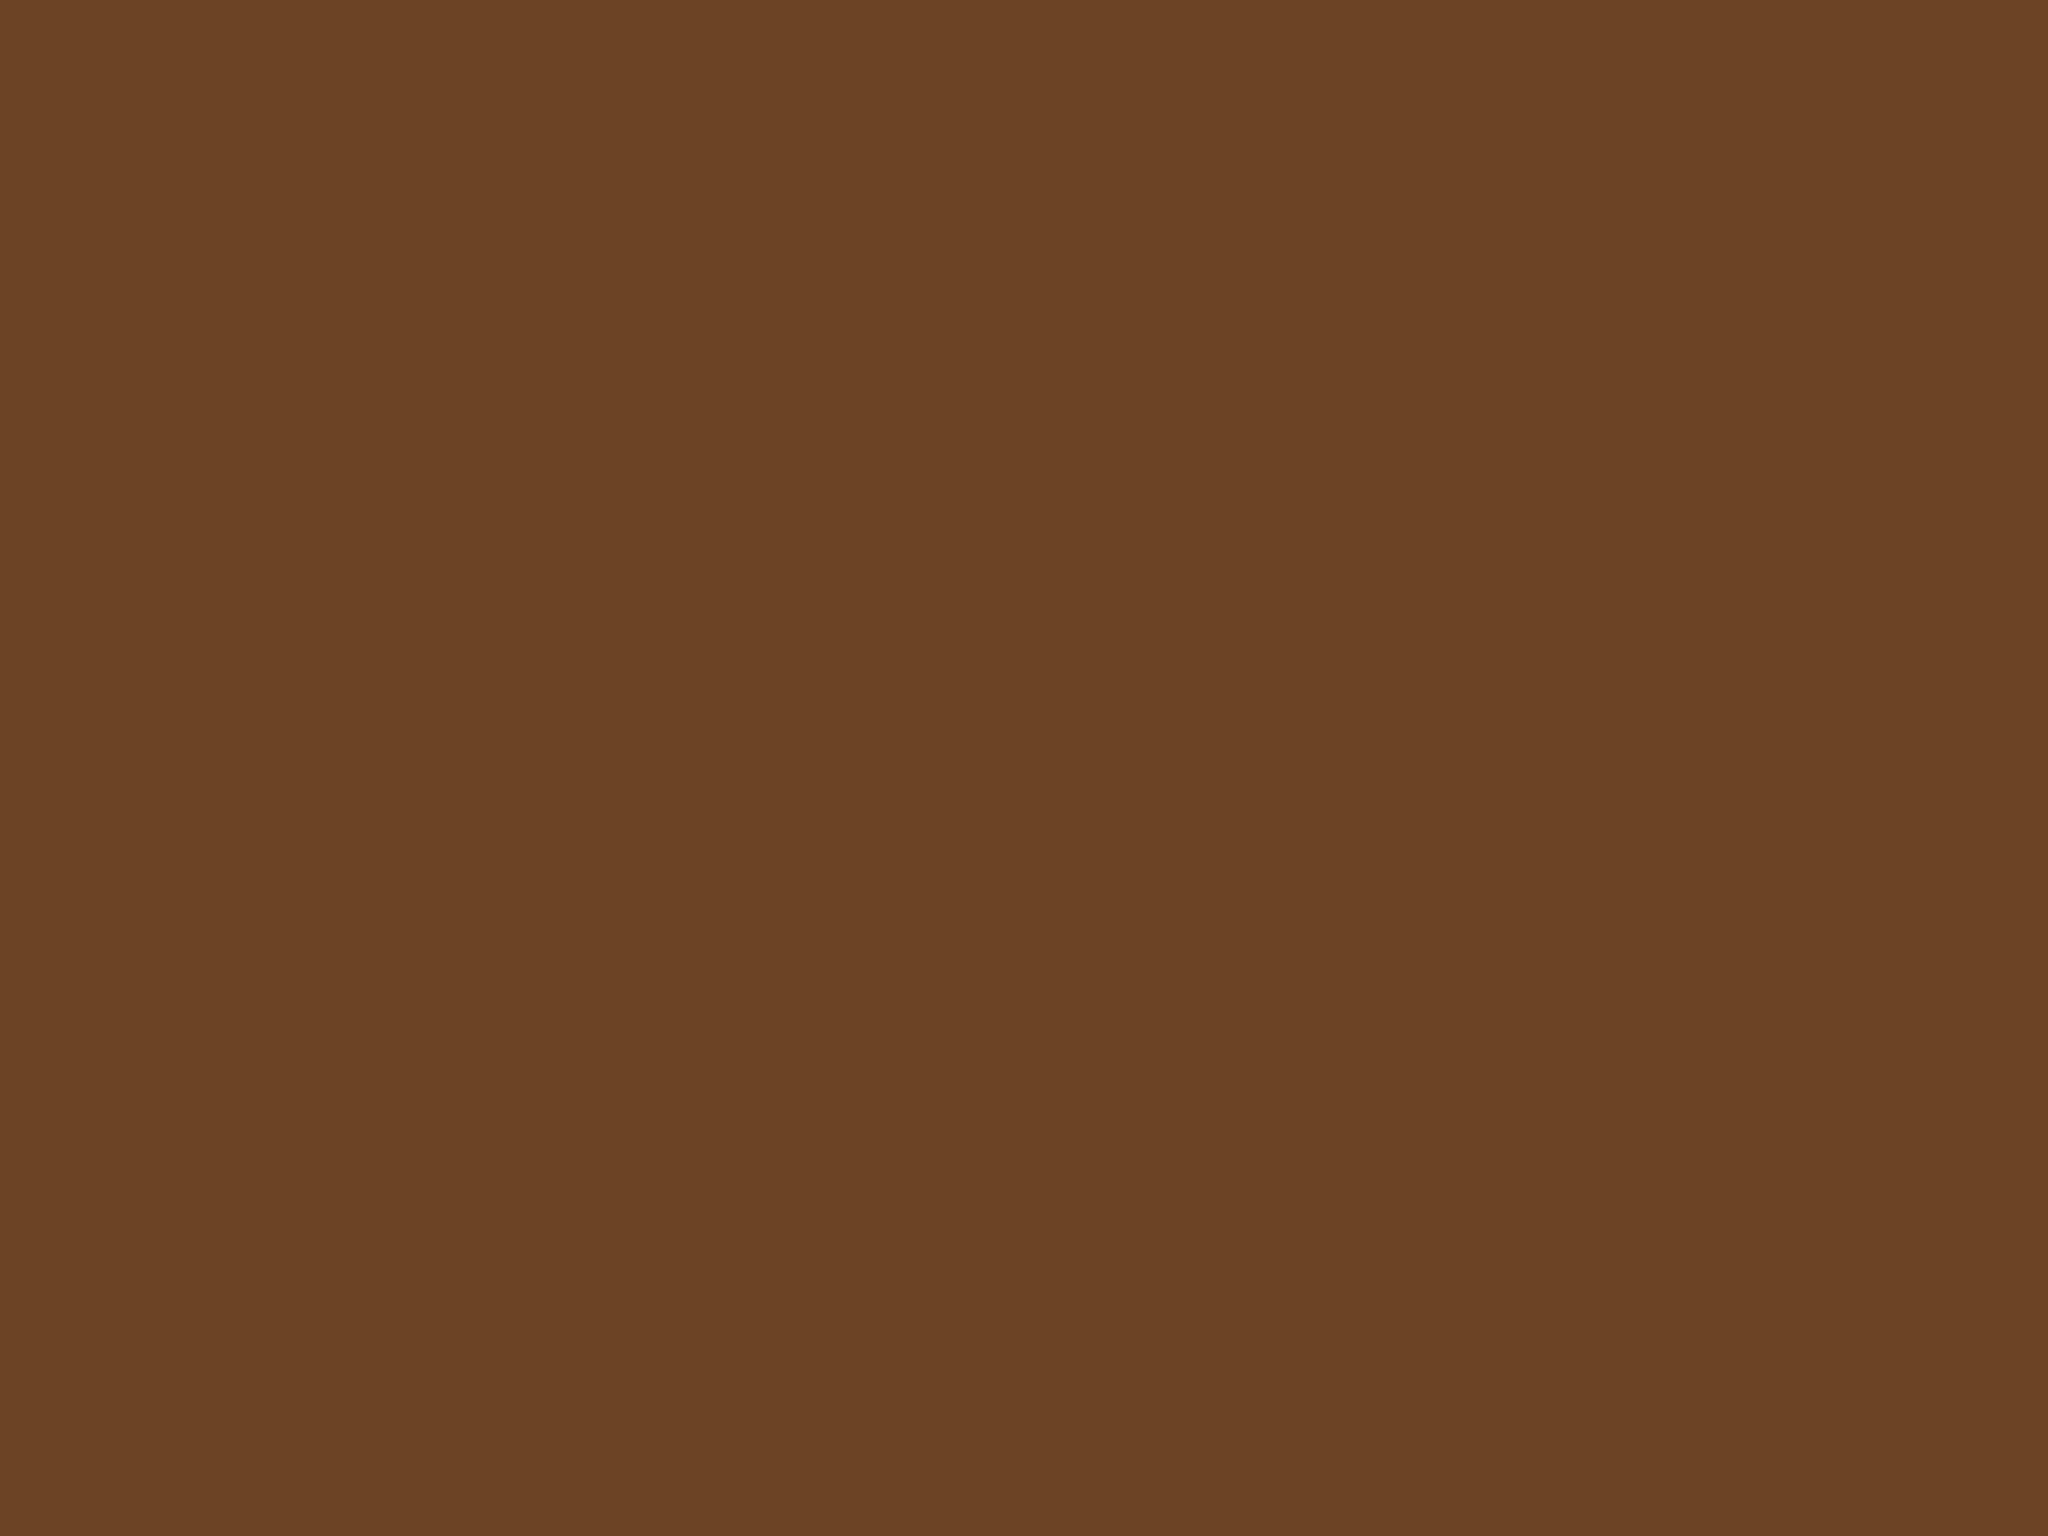 2048x1536 Brown-nose Solid Color Background